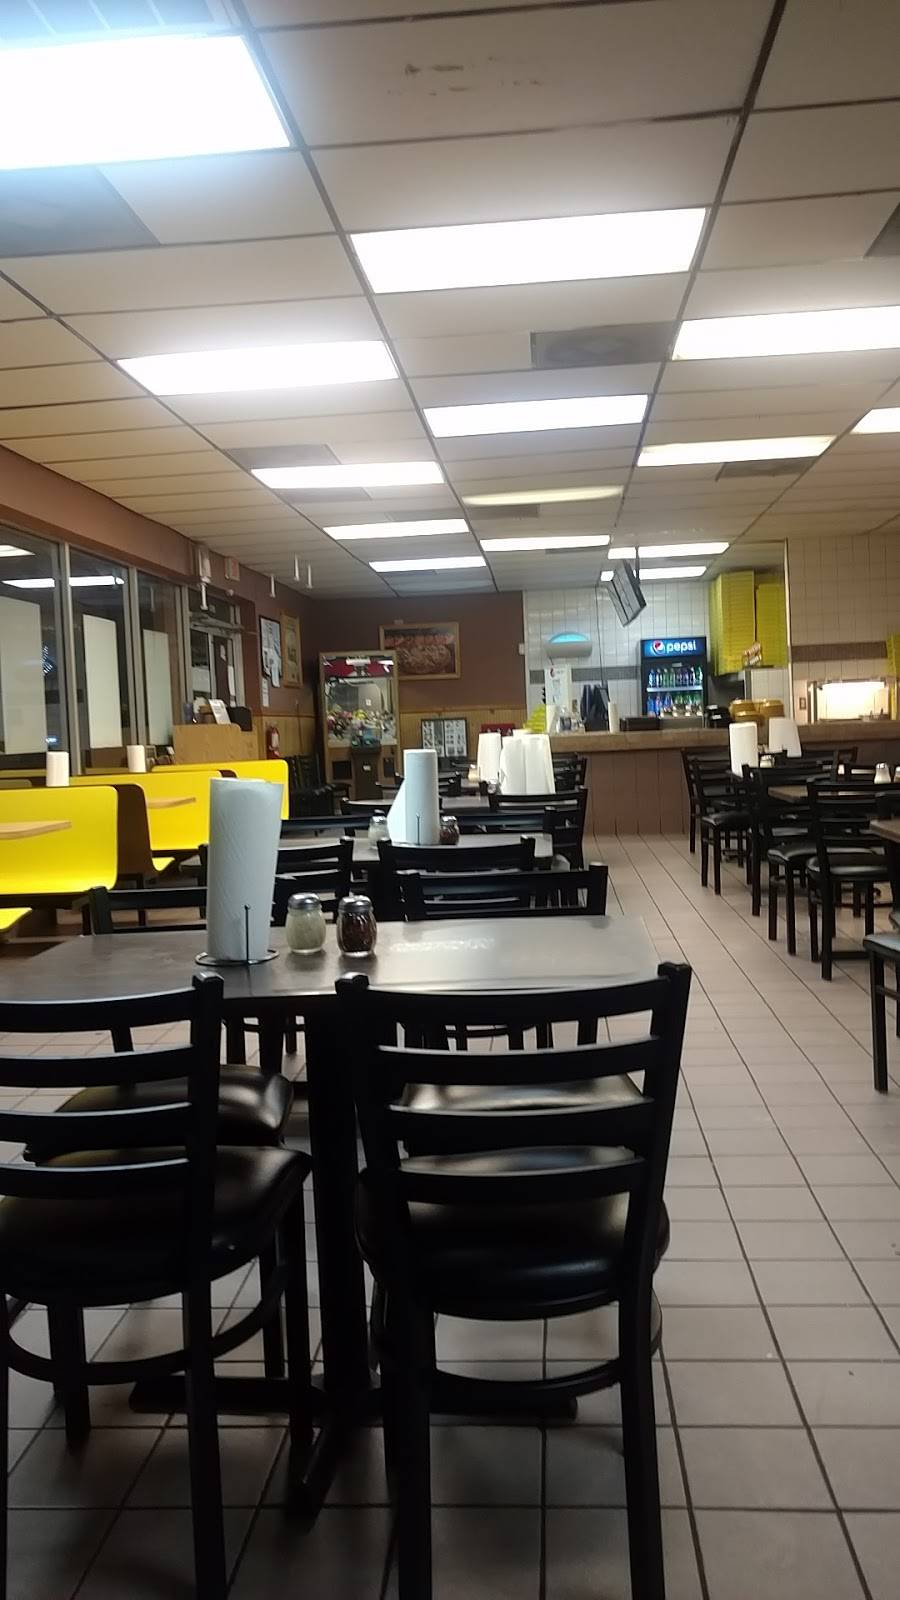 Hungry Howies Pizza | meal delivery | 701 S Main St, Wildwood, FL 34785, USA | 3527485525 OR +1 352-748-5525